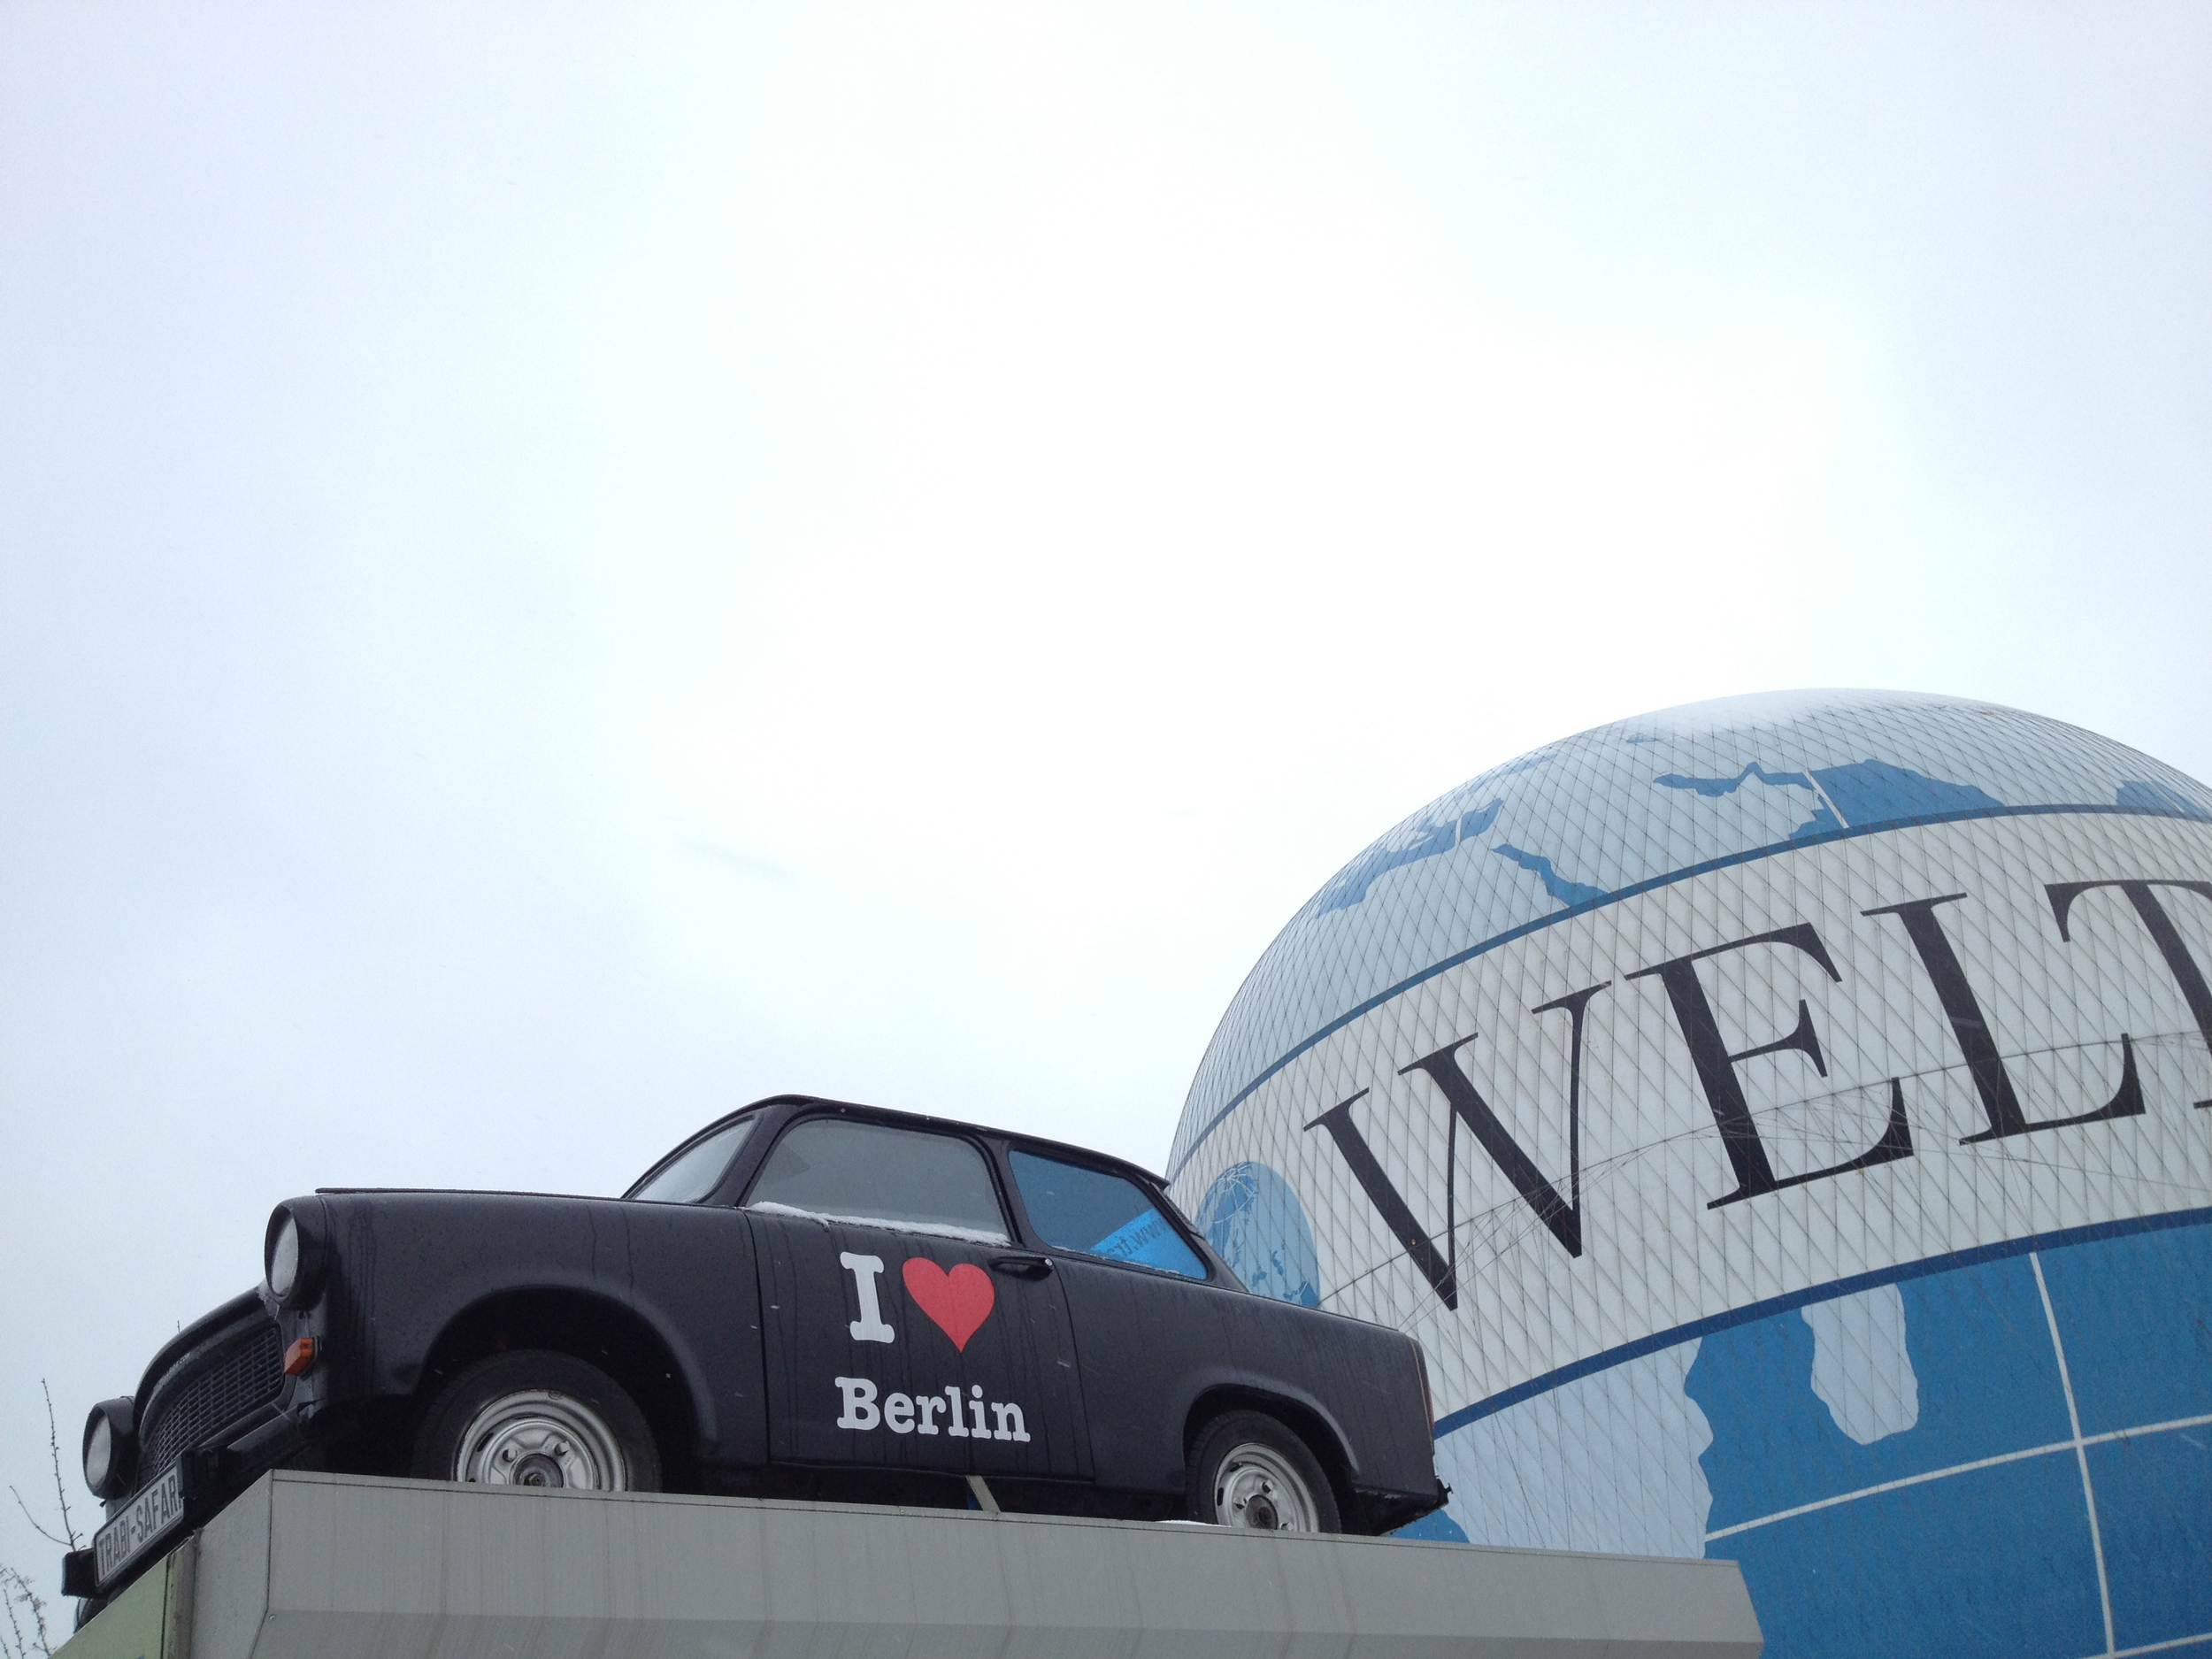 Berlin-Trabi-and-Die-Welt-balloon